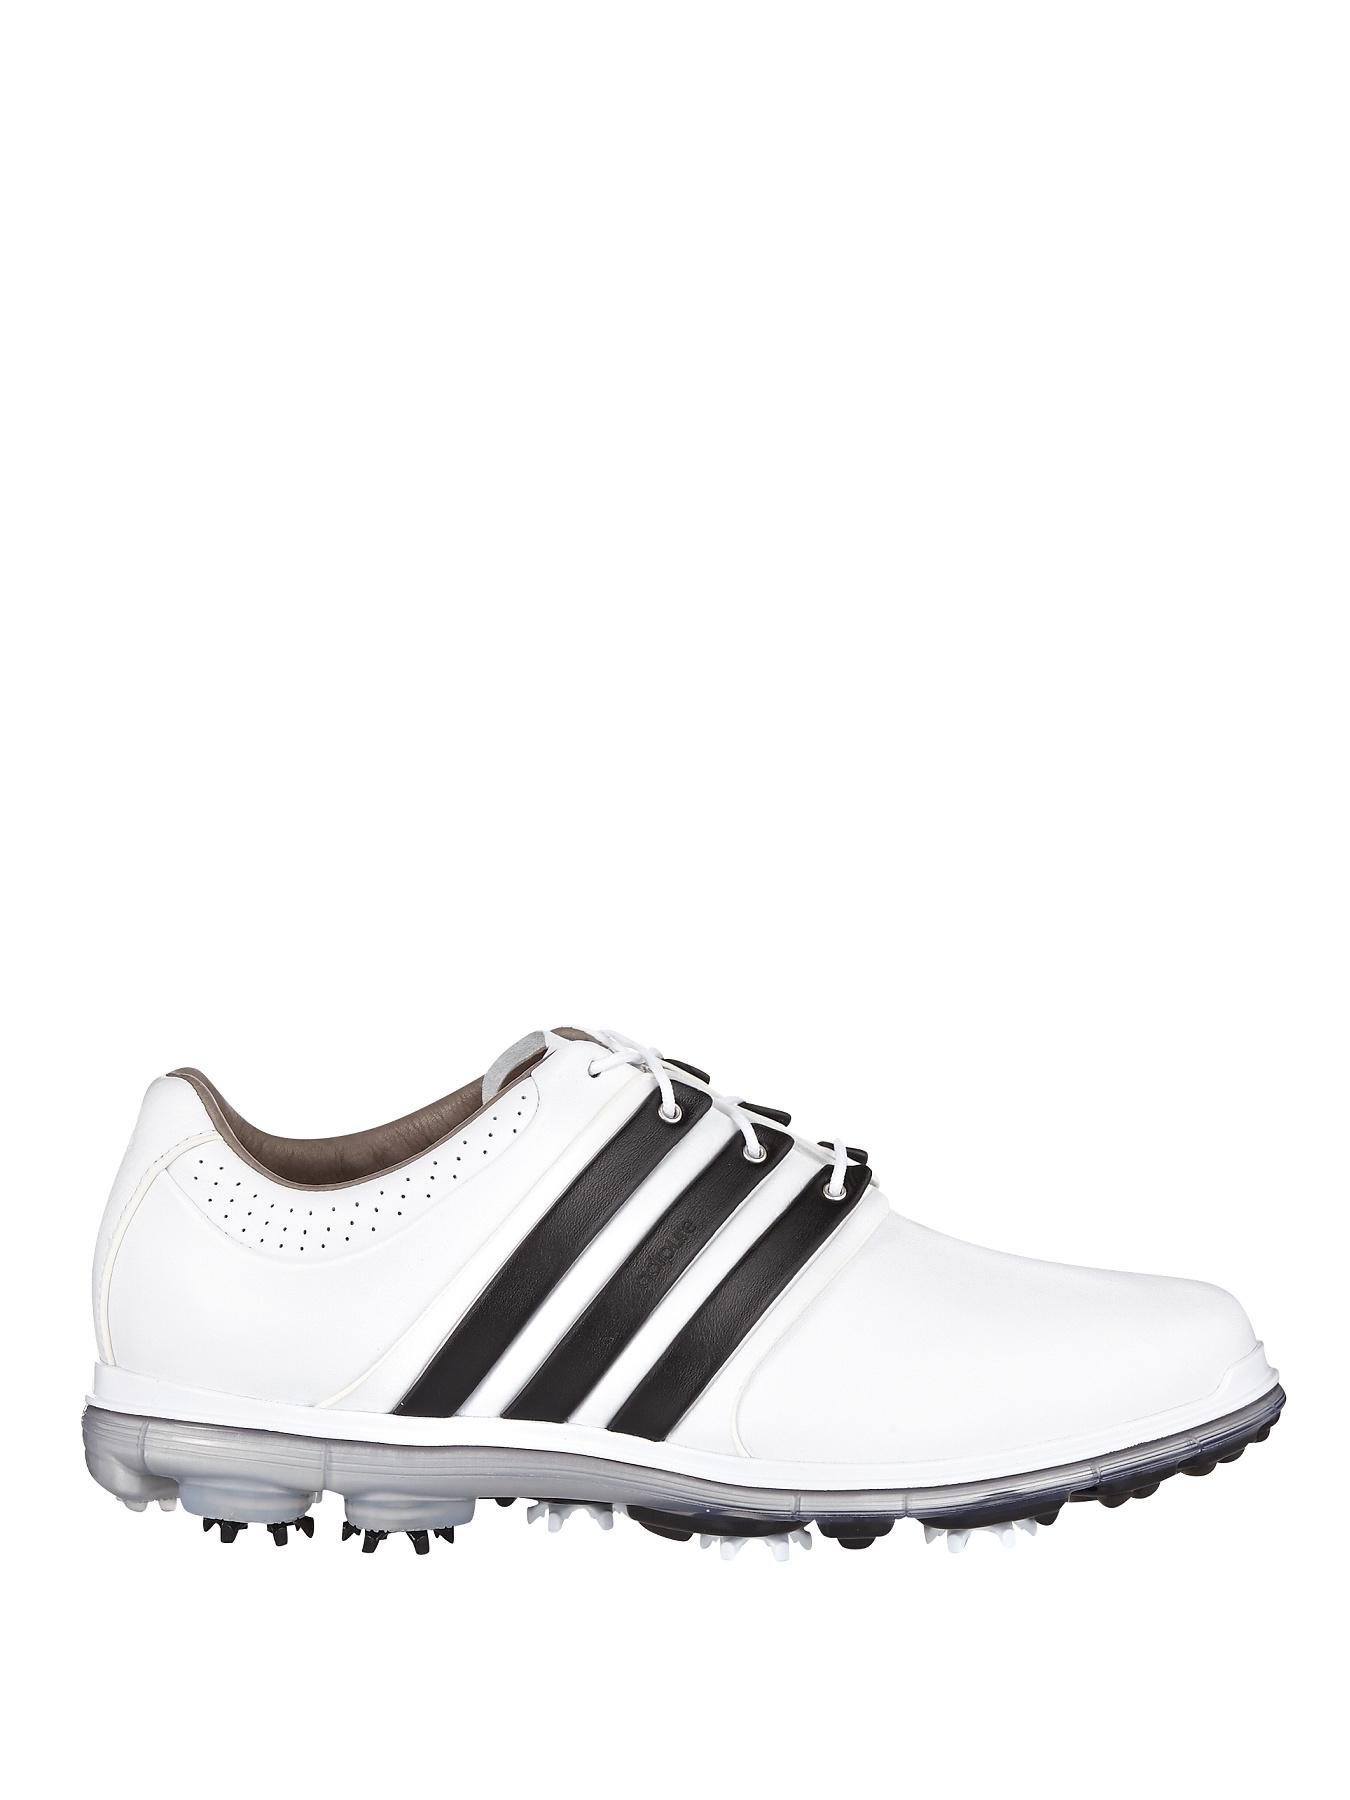 adidas Pure 360 LTD Golf Shoe - White/Black/Silver Metallic